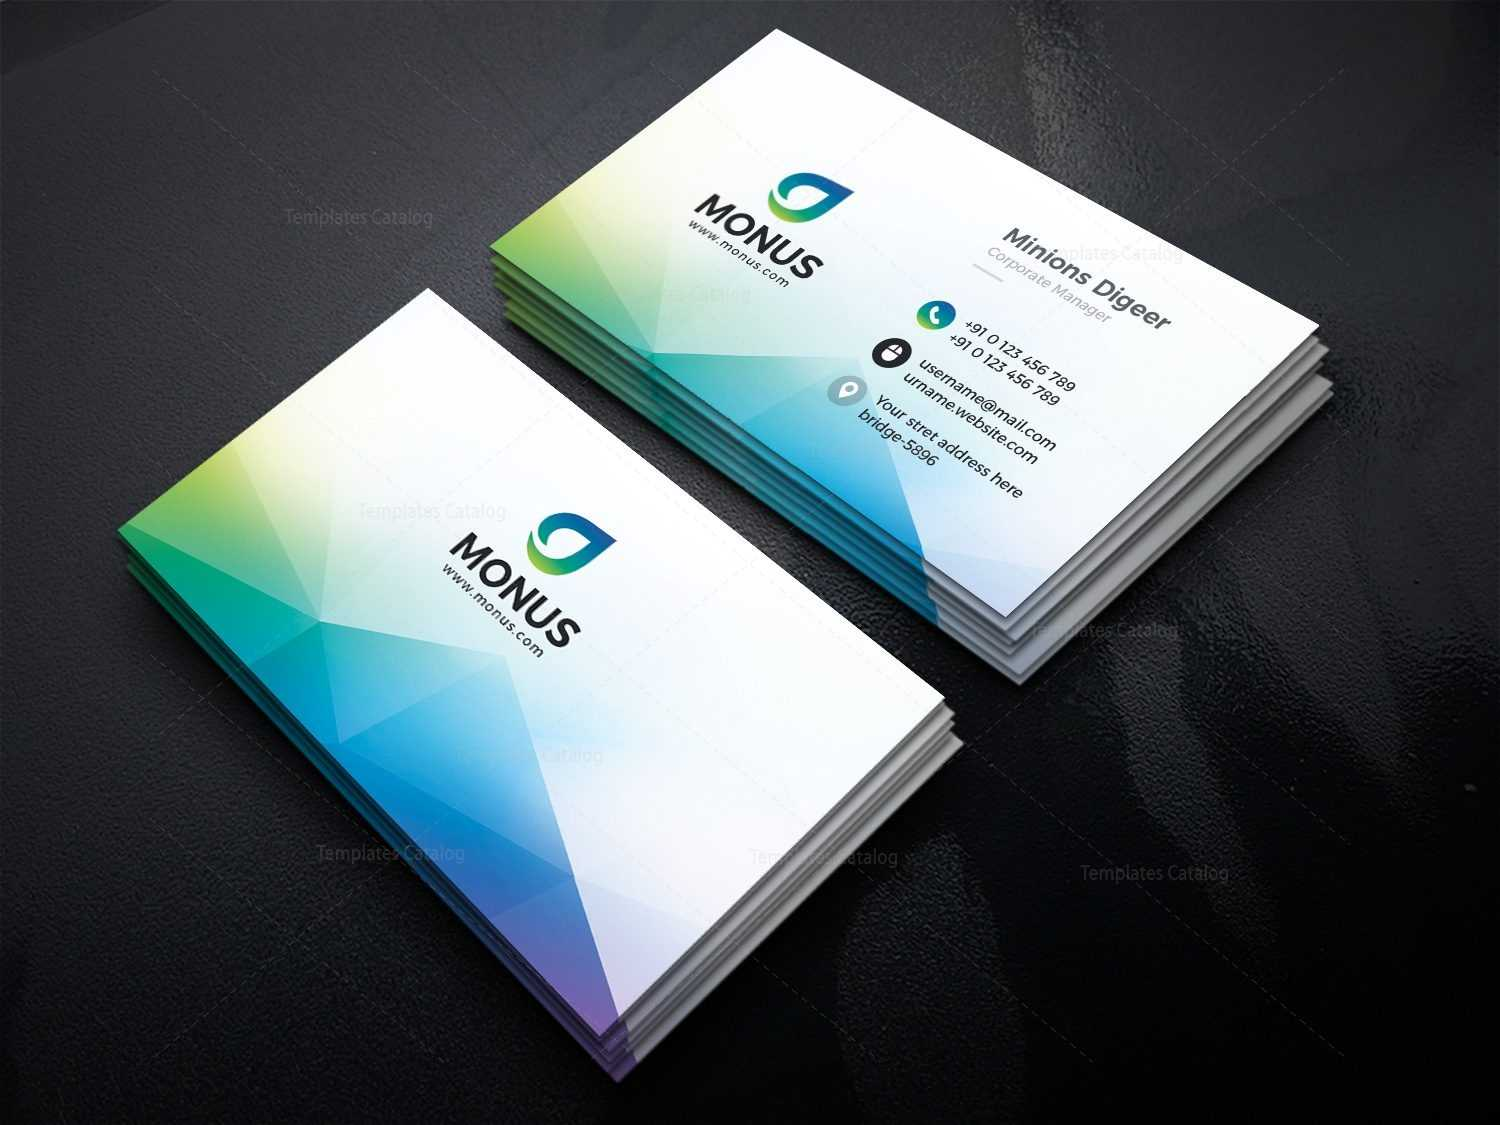 Aurora Modern Business Card Design Template 001593 Regarding Modern Business Card Design Templates